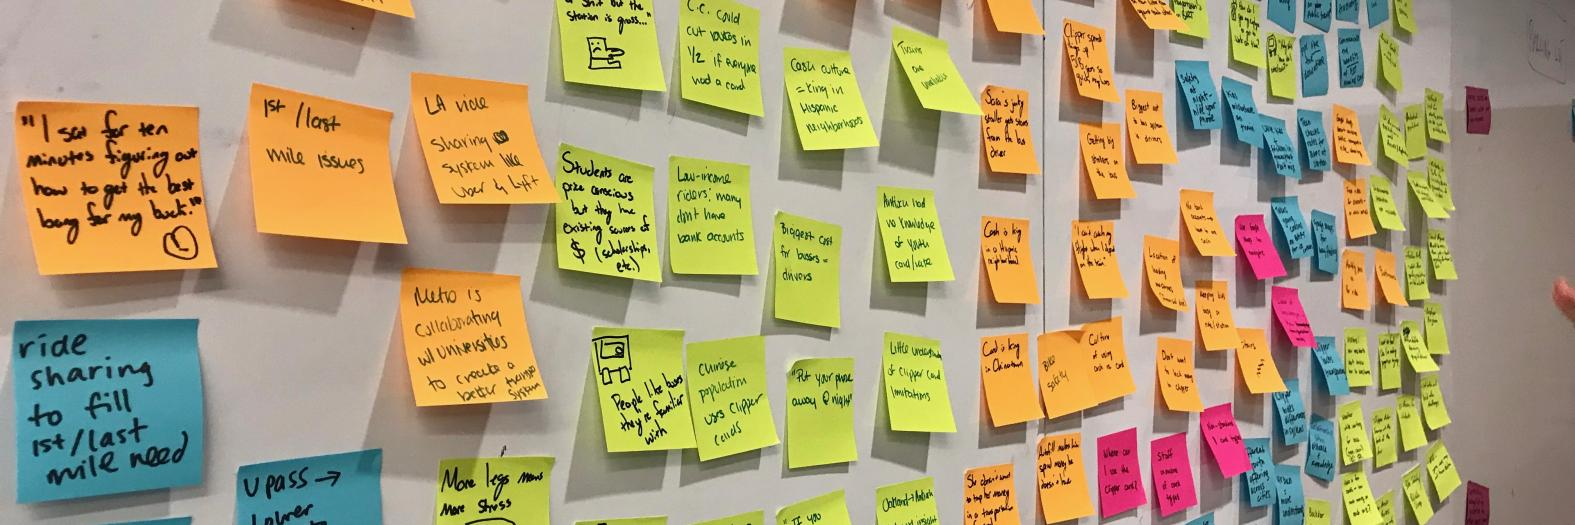 post-its from event